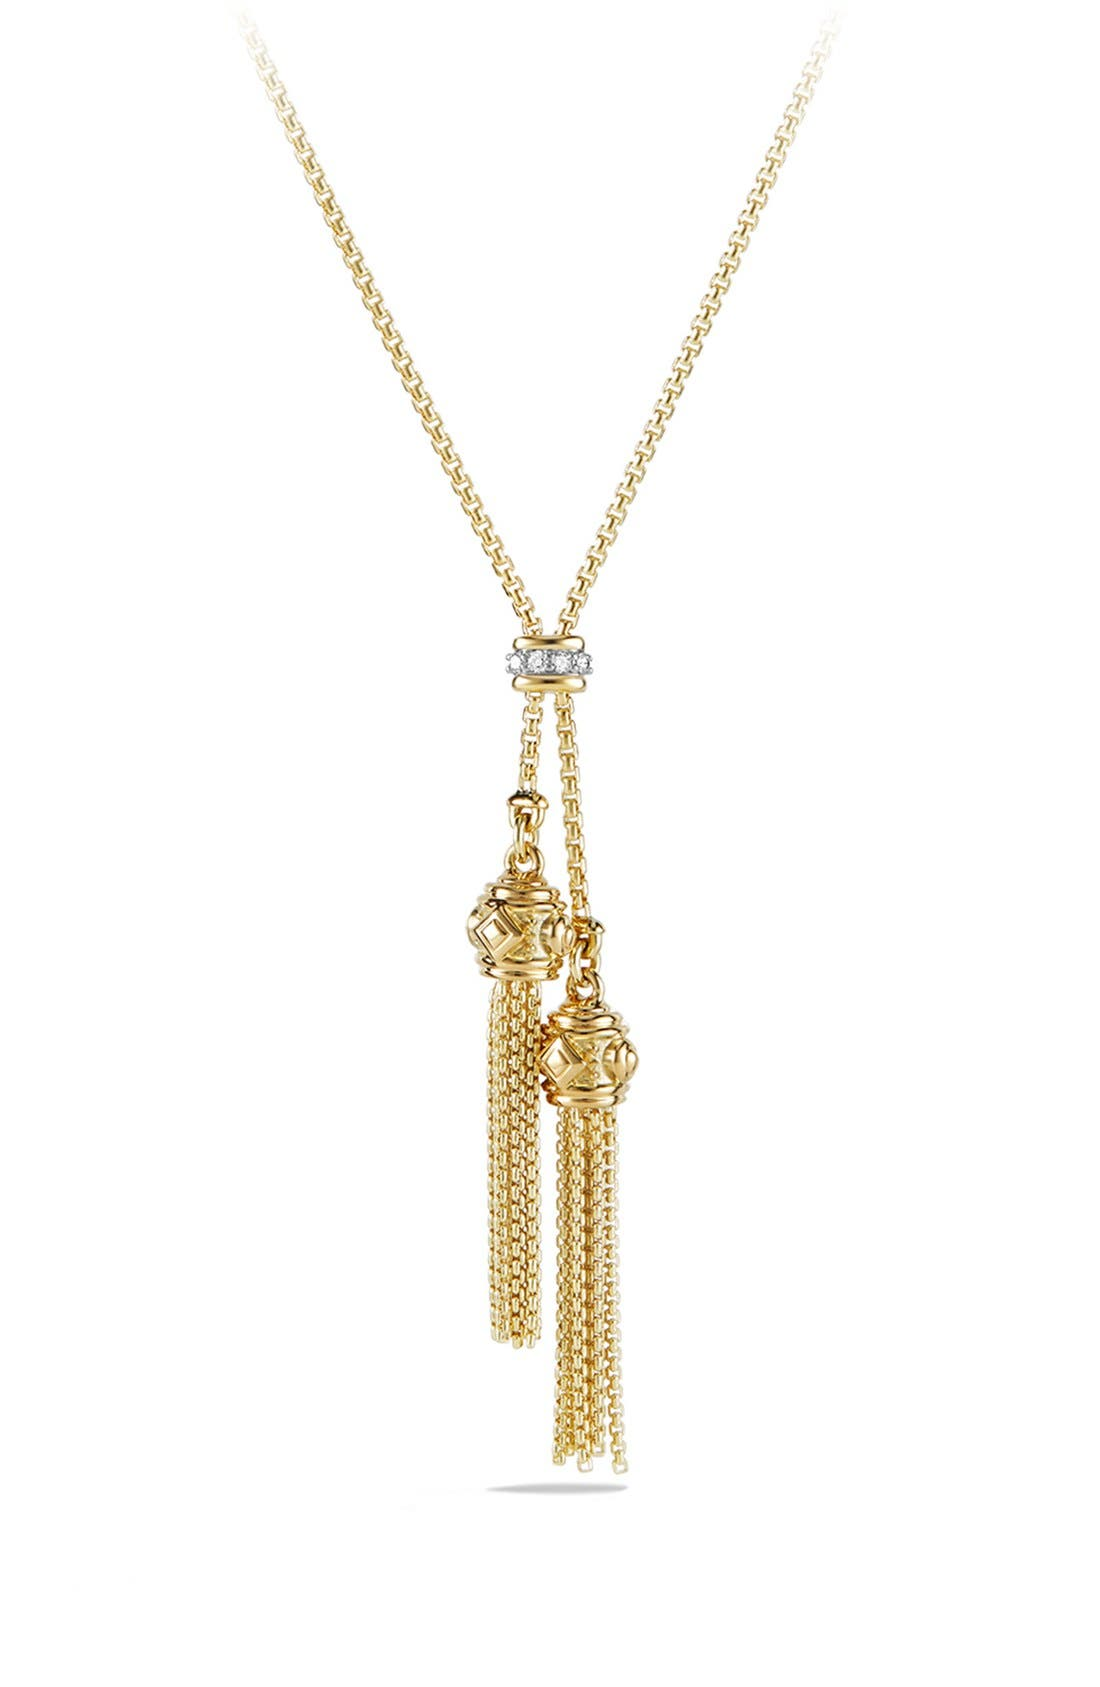 'Renaissance' Tassel Necklace with 18K Gold and Diamonds,                             Main thumbnail 1, color,                             710